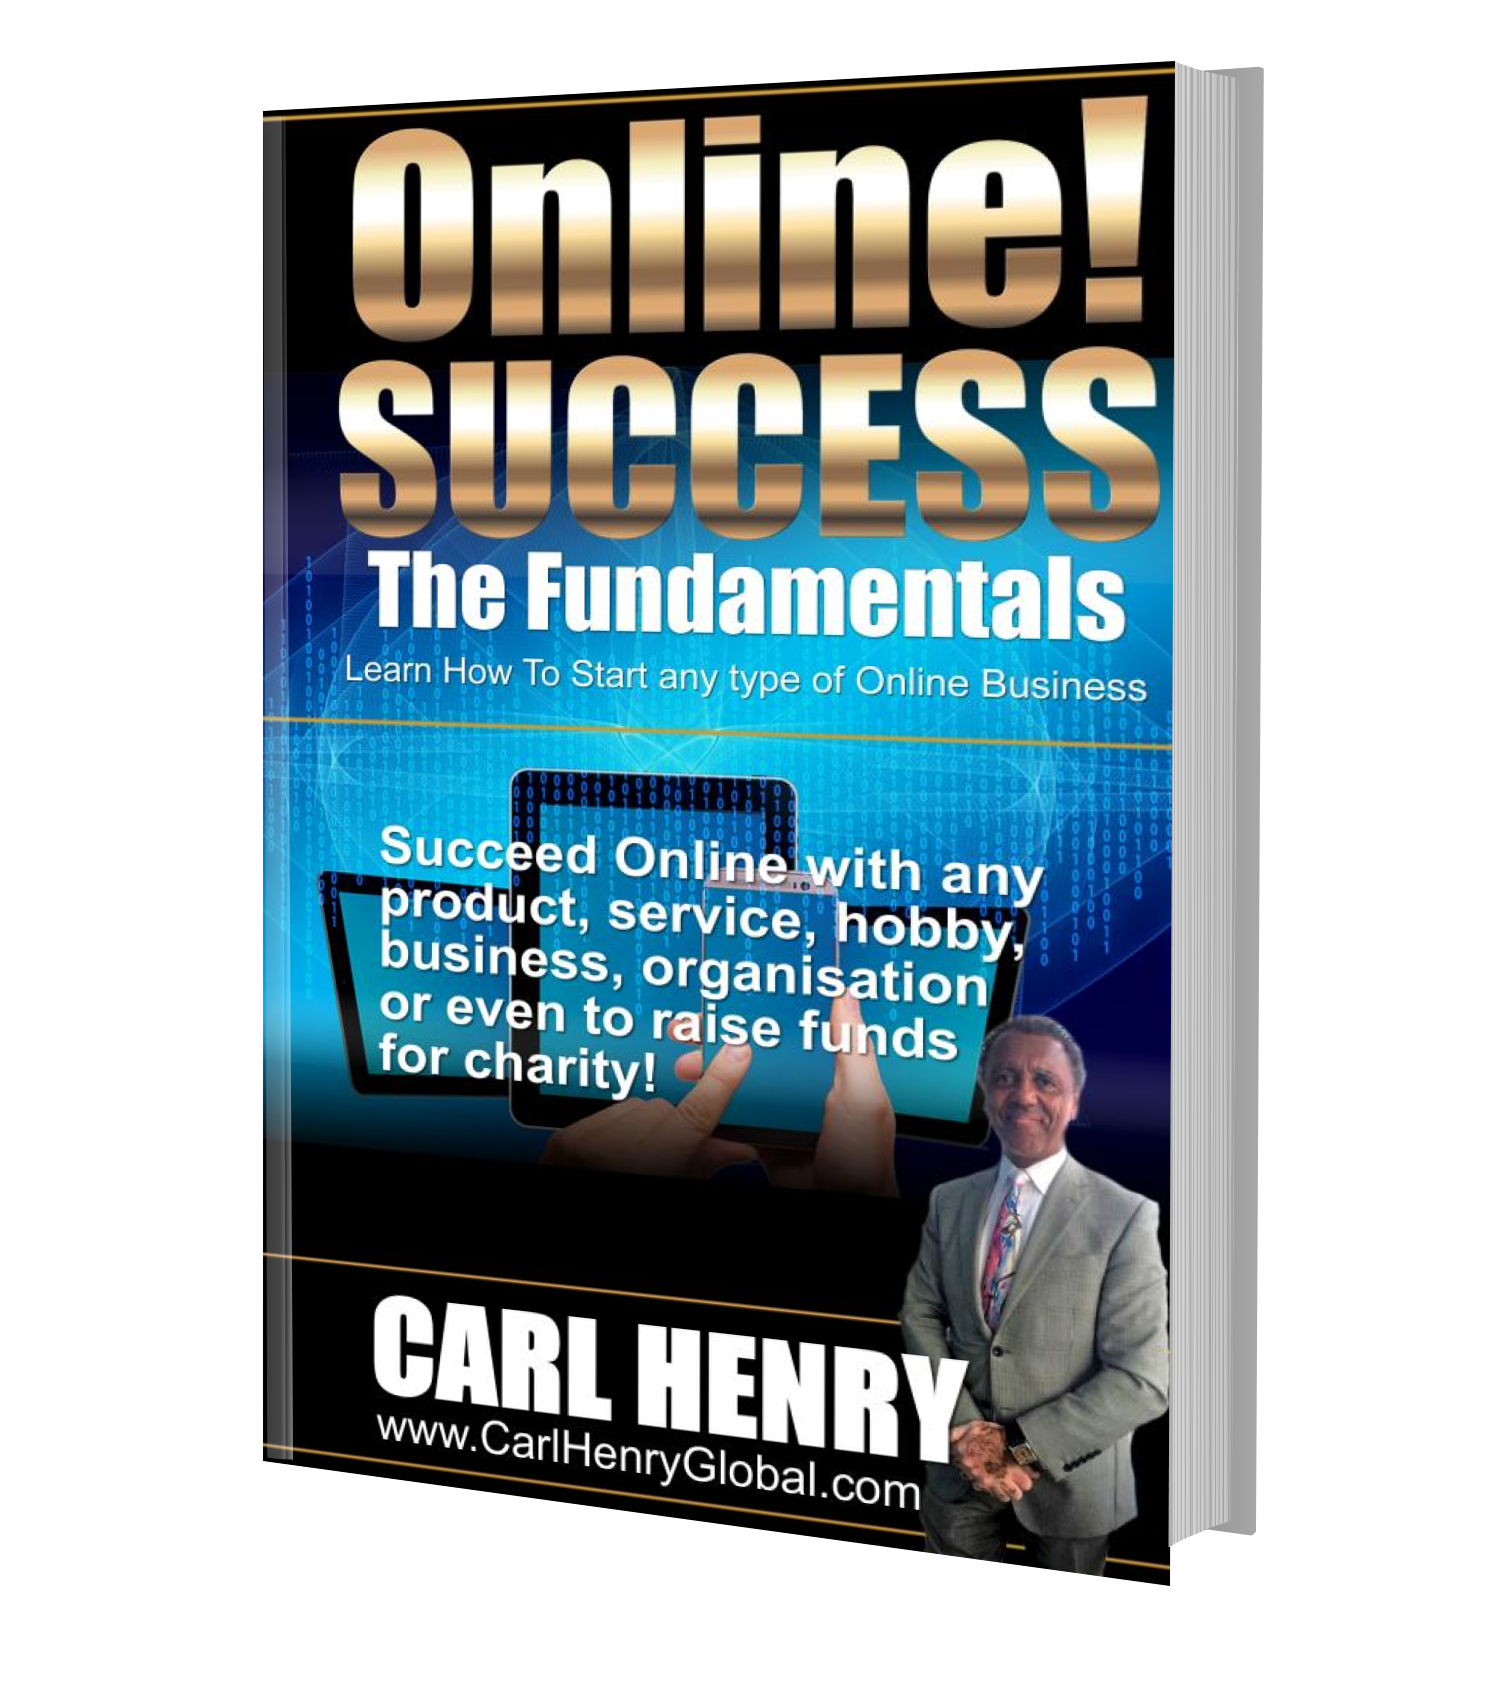 Carl-Henry-ONLINE-SUCCESS-eBook-1-1500x1700.png